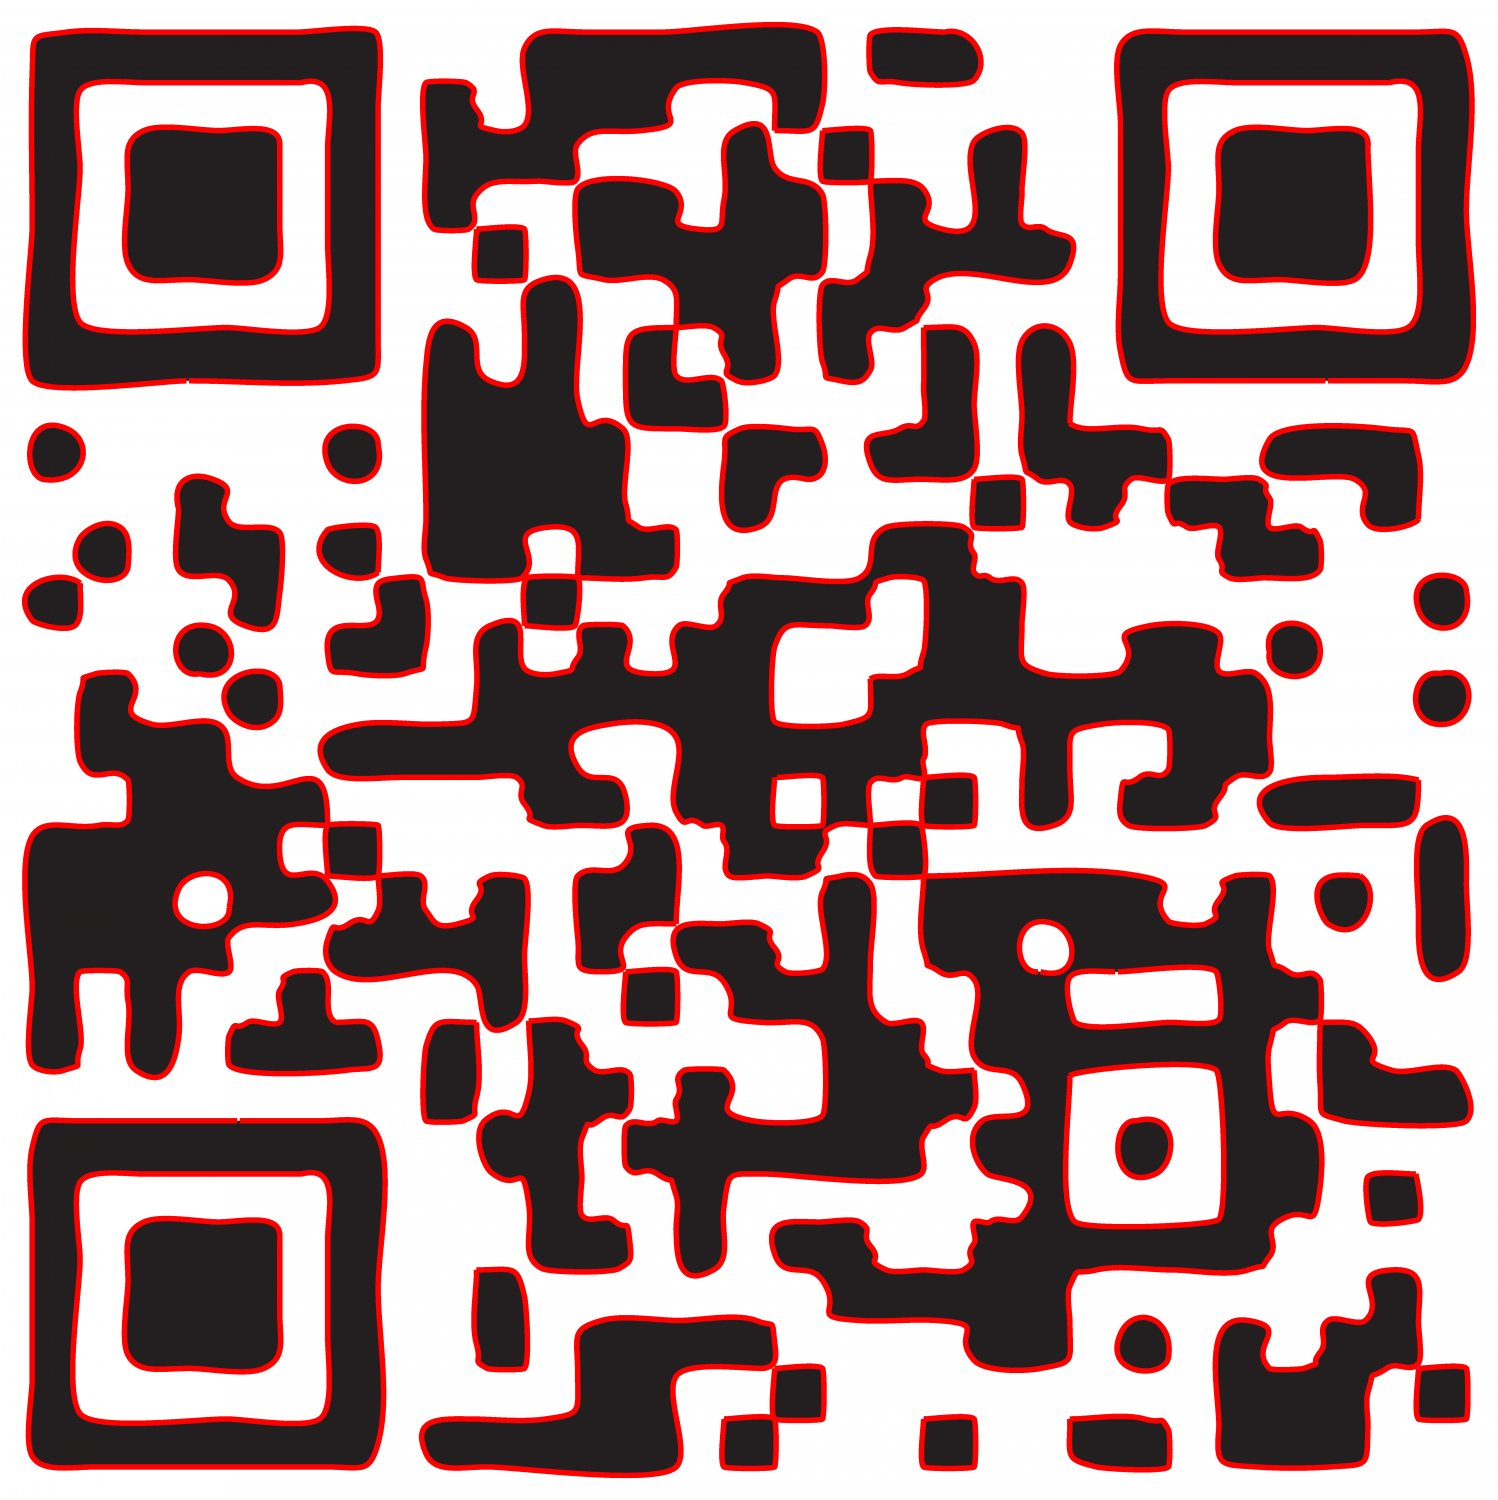 - The original plan was to make this QR code from chocolate. -  - Art and the Zen of QR Codes - QaRt - making art from QR codes. - Tony Karp, design, art, photography, techno-impressionist, techno-impressionism, aerial photography , drone , drones , dji , mavic pro , video , 3D printing - Books -